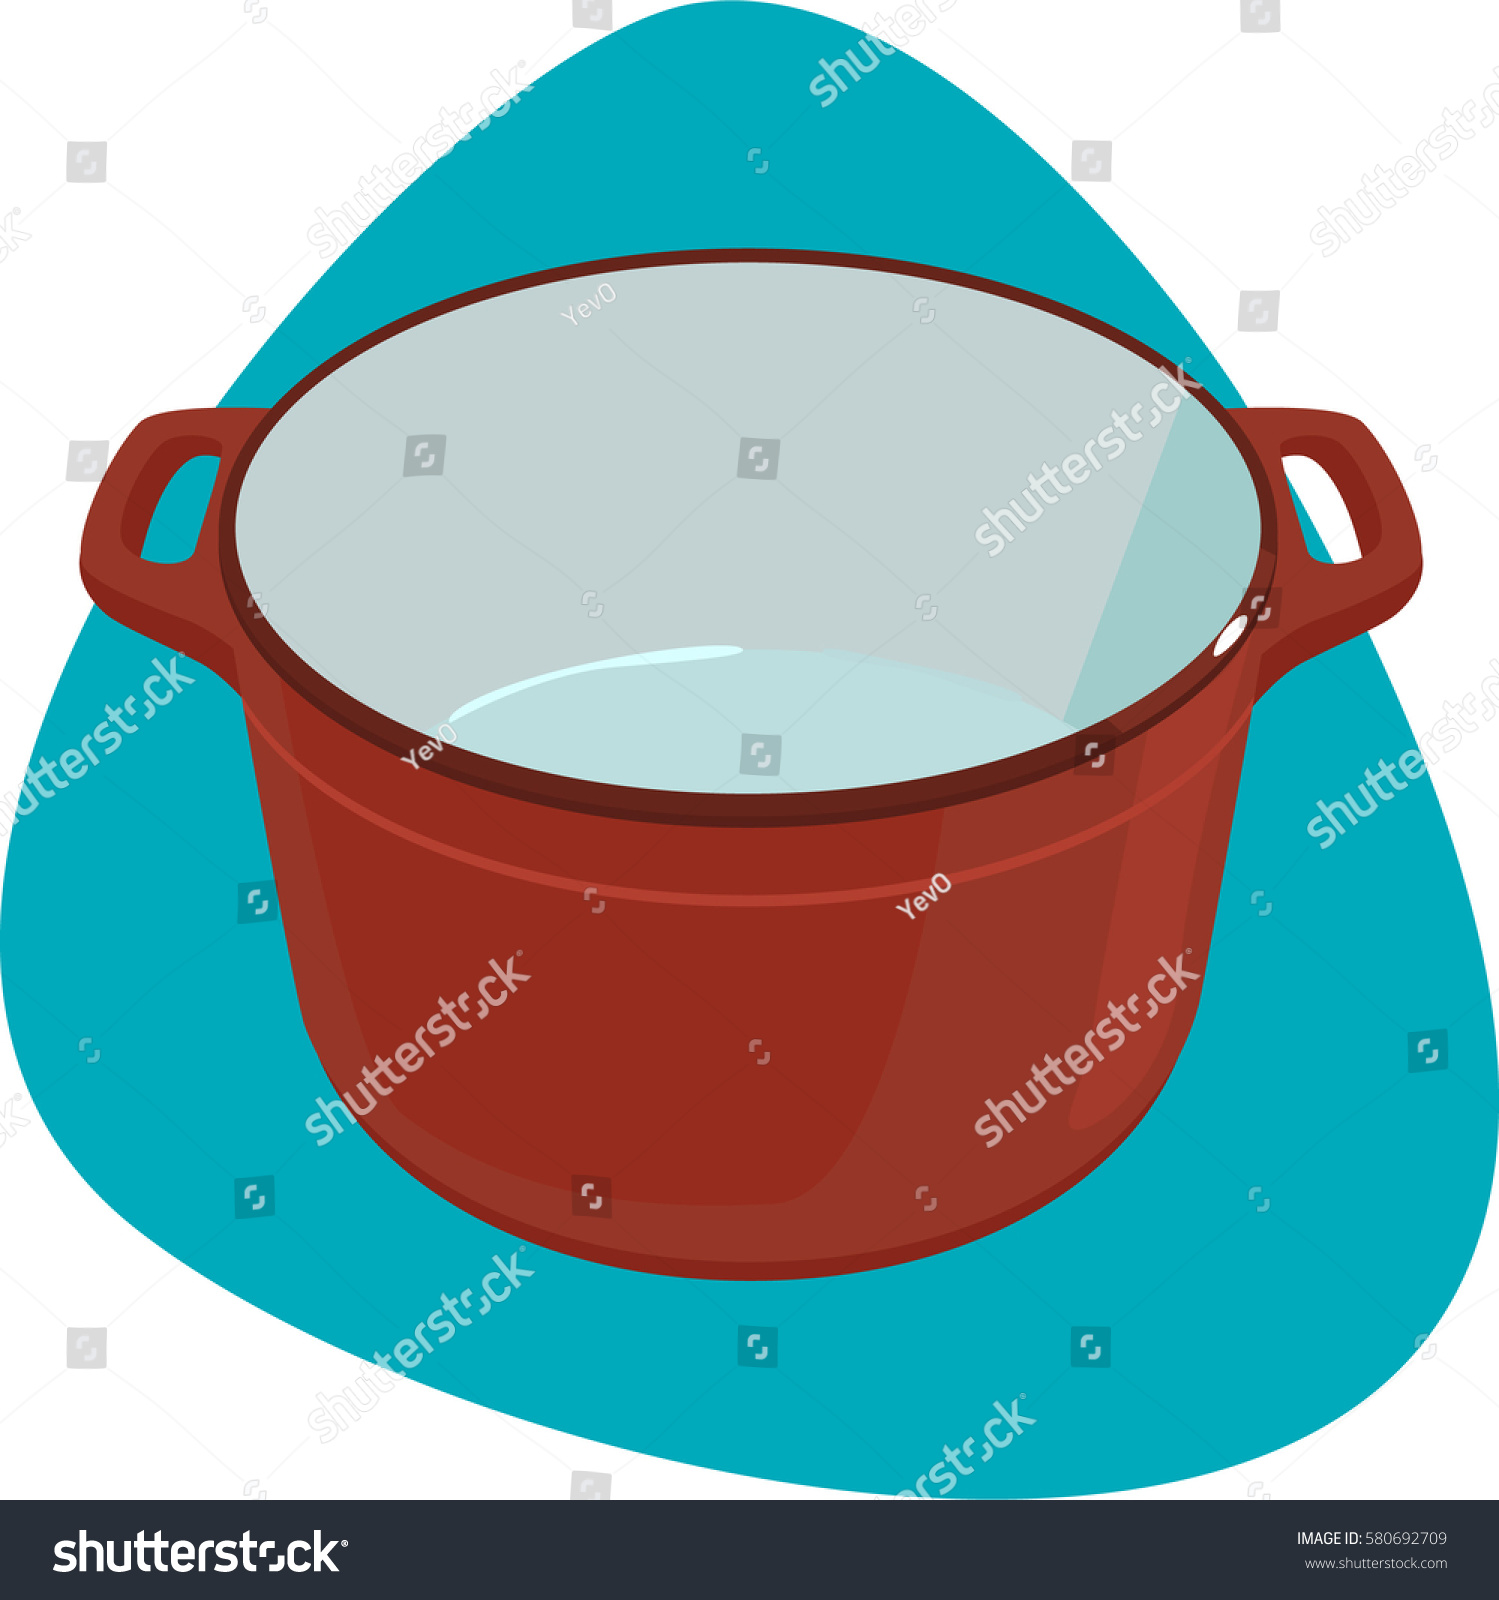 empty enameled castiron pot with handles isolated on blue